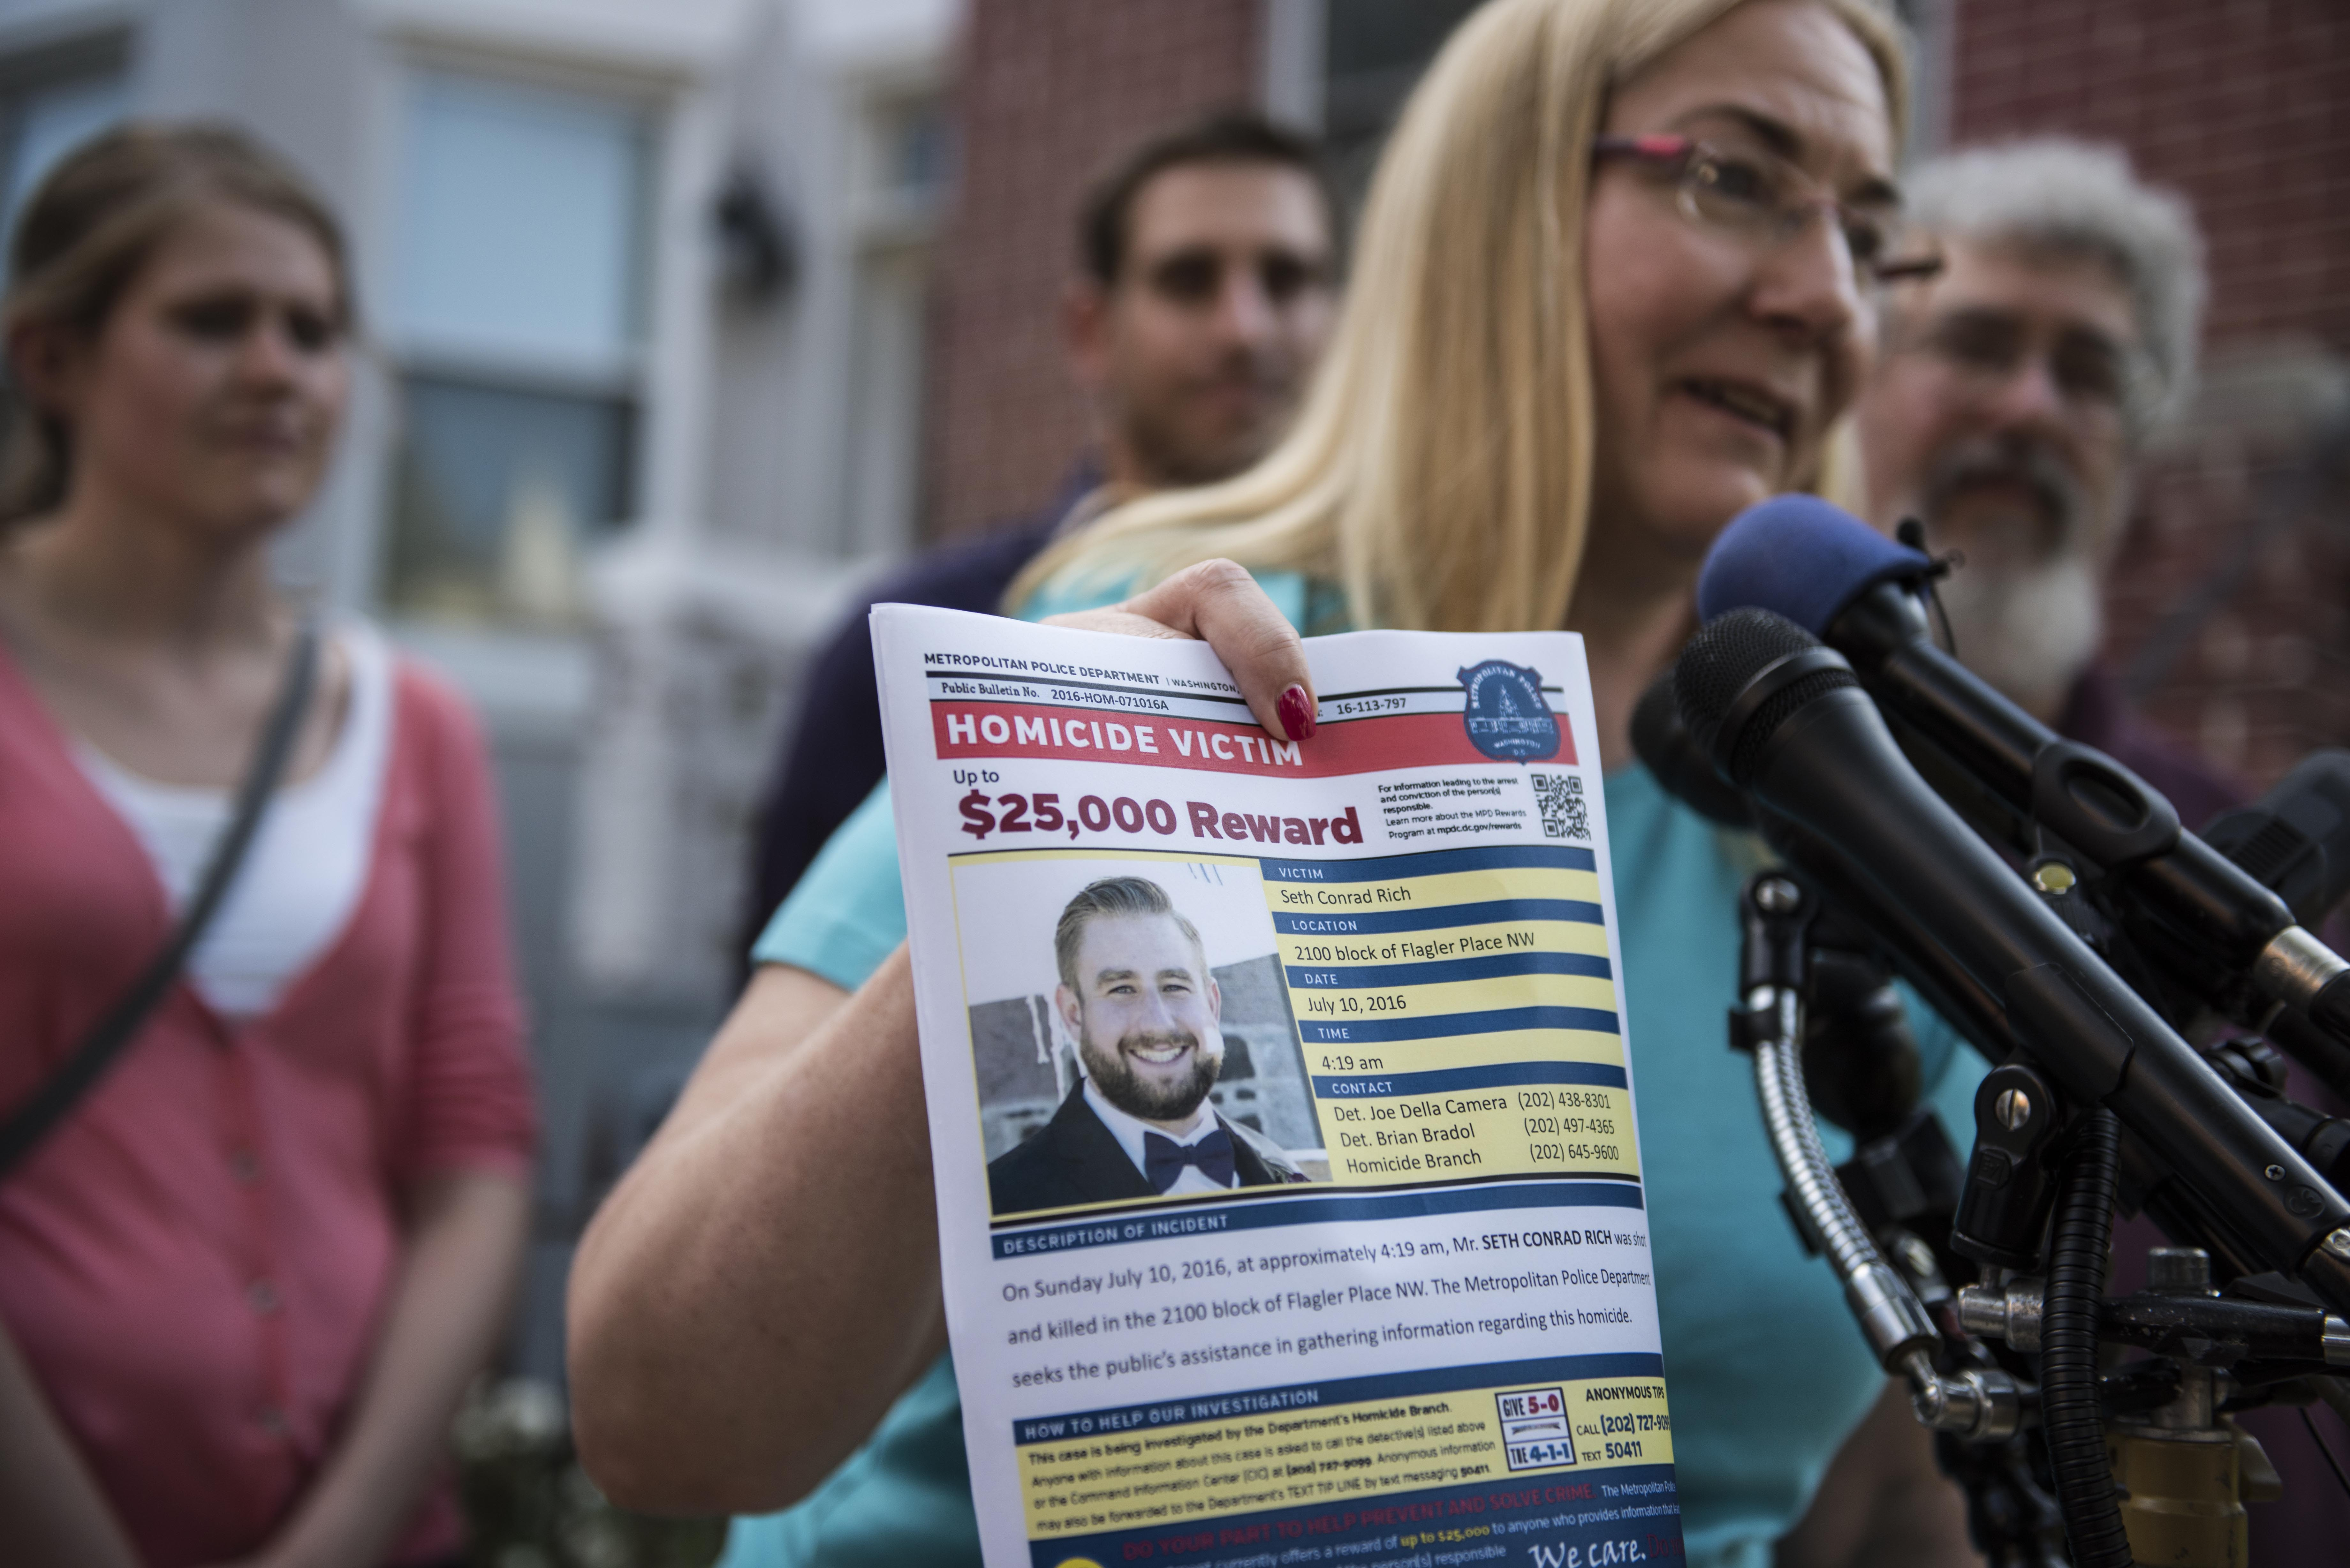 Mary Rich, the mother of slain DNC staffer Seth Rich, gives a press conference in Bloomingdale on August 1, 2016. Seth Rich was gunned down in the DC neighborhood a month ago and the Rich's were imploring people for any information they may have about his killer.